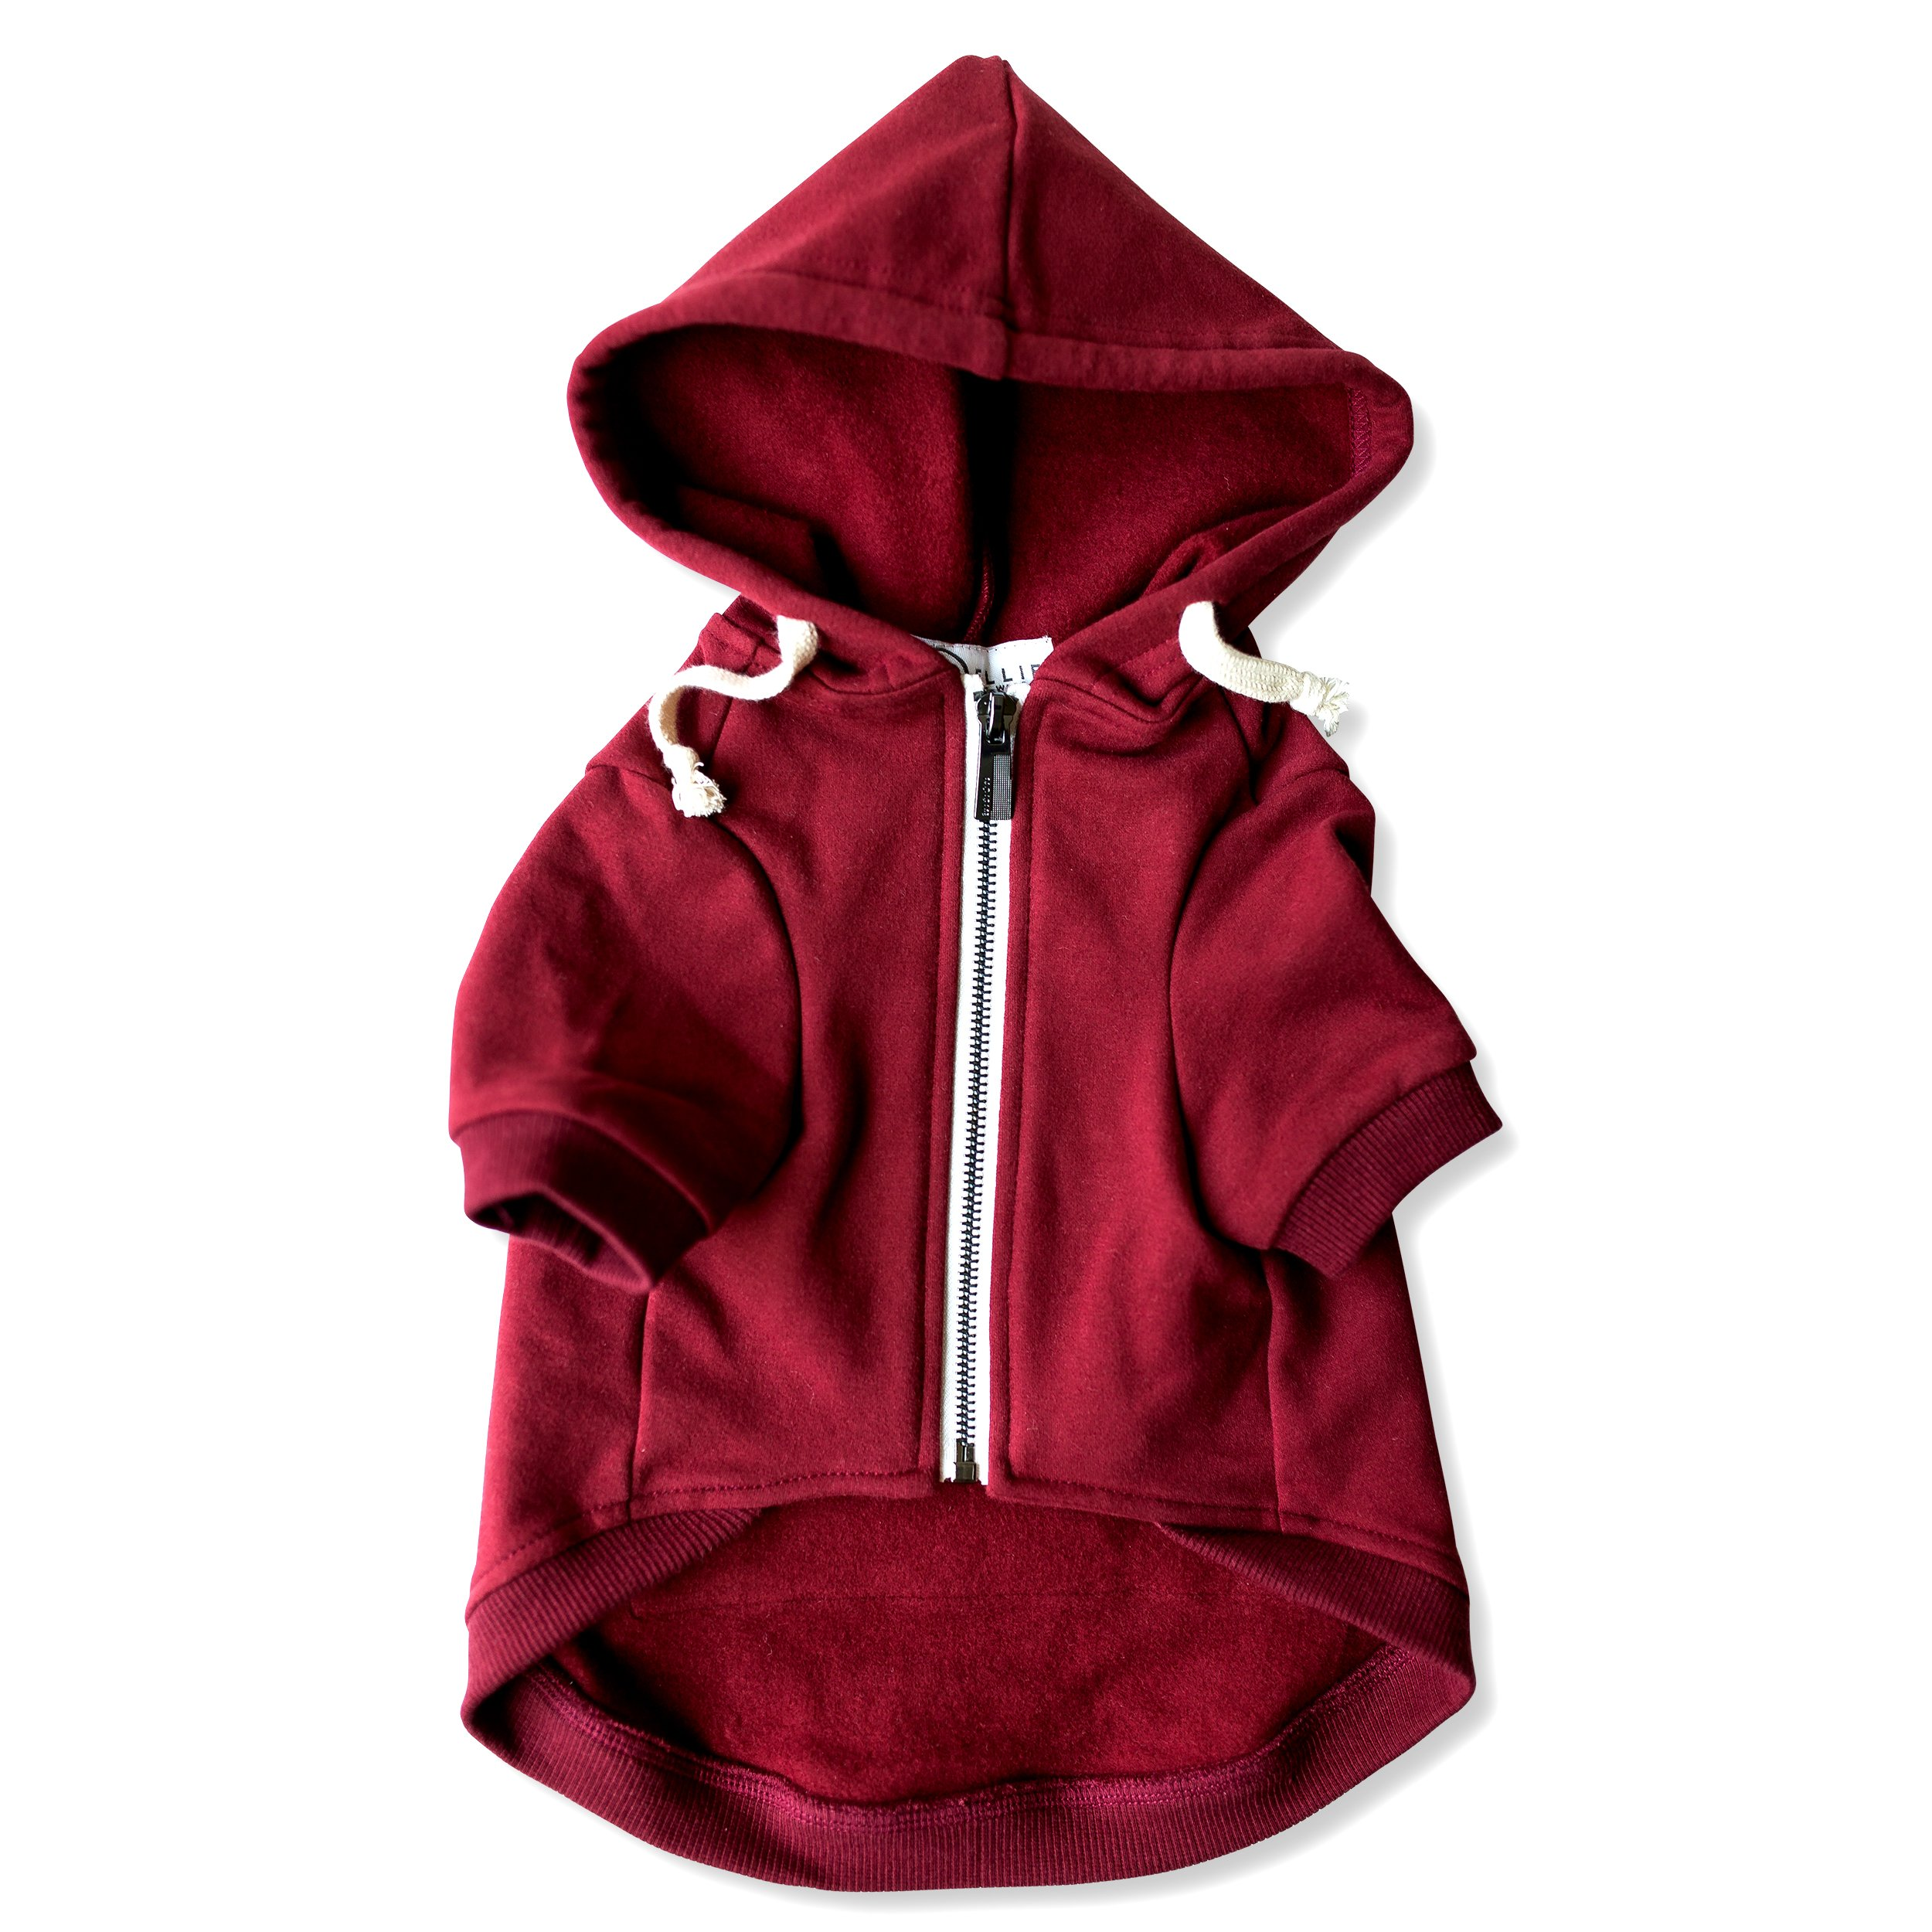 Adventure Zip Up Maroon Red Dog Hoodie with Hook & Loop Pockets and Adjustable Drawstring Hood - Available in Extra Small to Extra Large. Comfortable & Versatile Dog Hoodies by Ellie (M) by Ellie Dog Wear